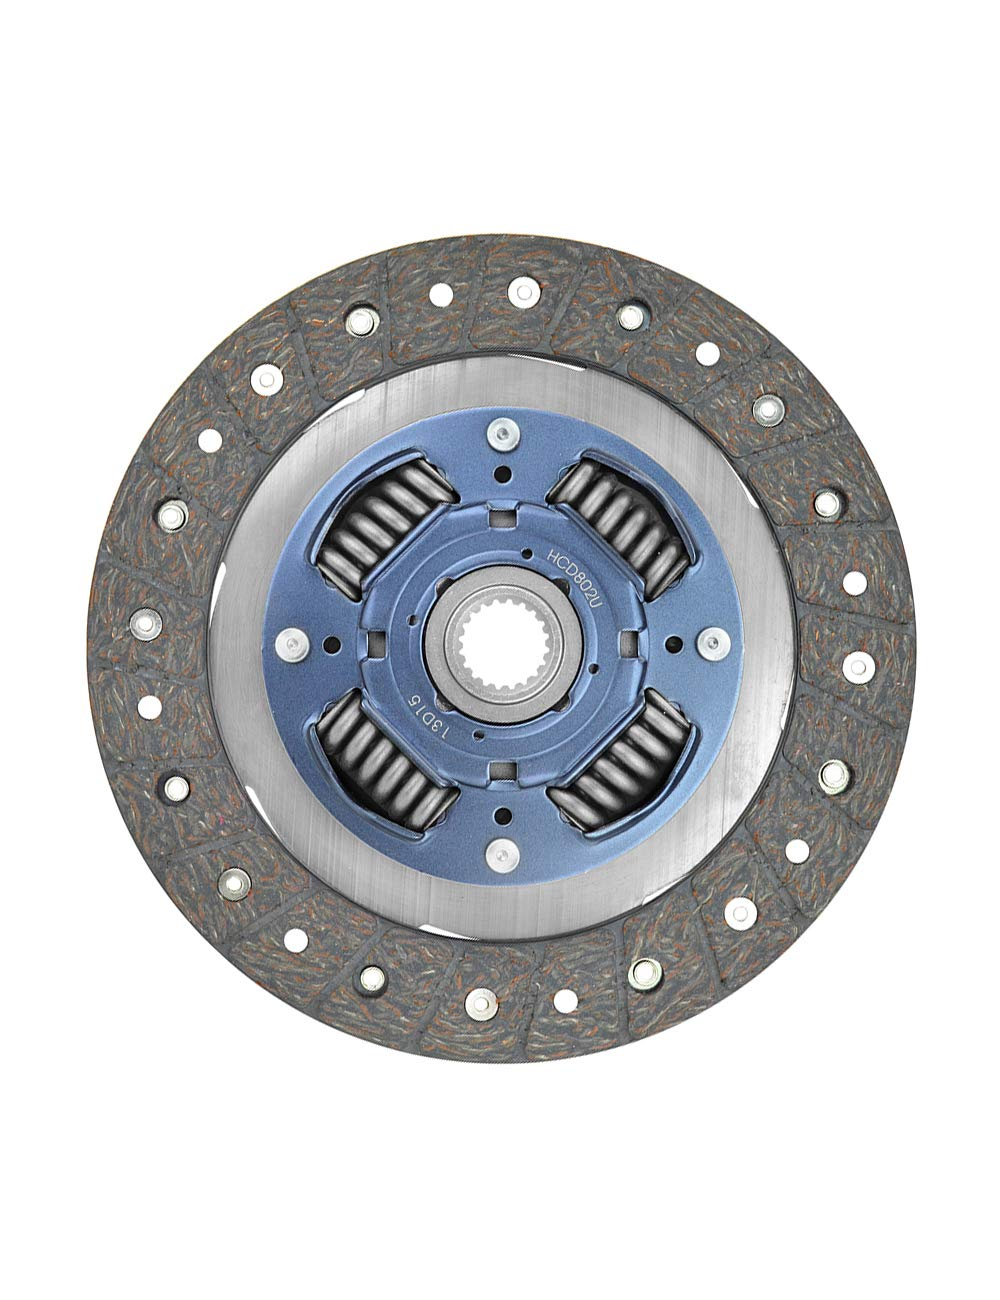 AT Clutches Clutch kit K-08-022 S3 HD for Honda Civic Acura EL